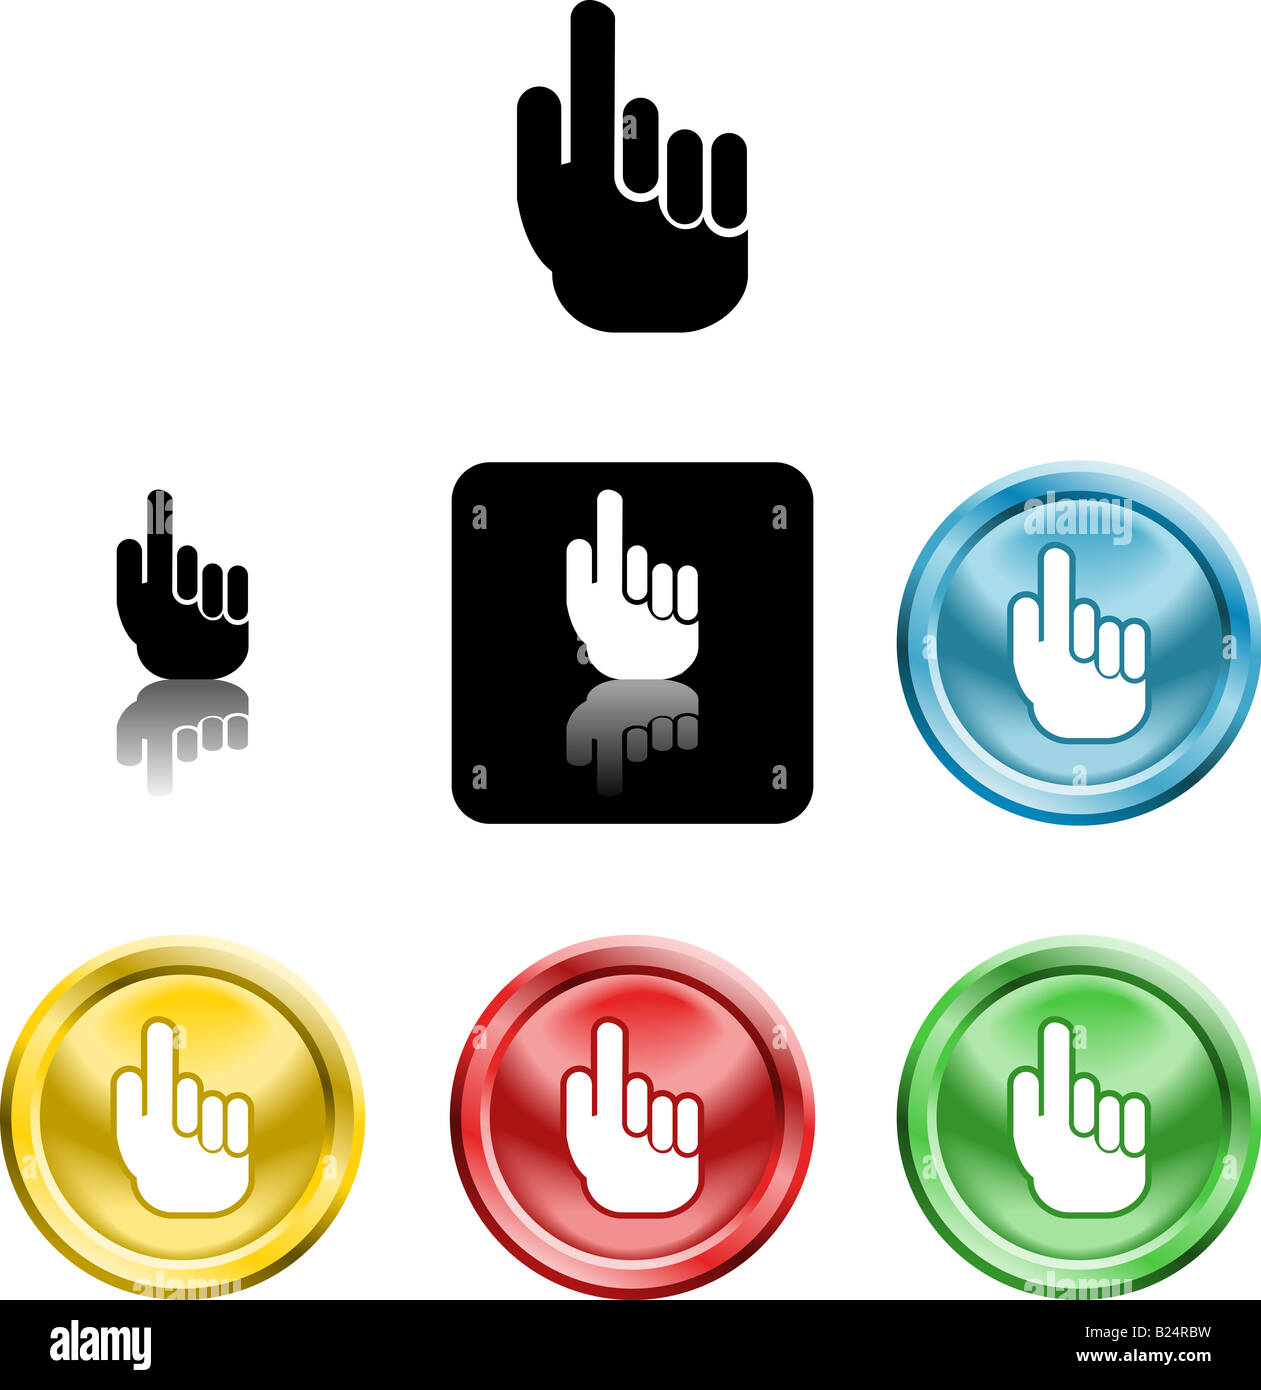 Several versions of an icon symbol of a stylised hand pointing finger upwards - Stock Image